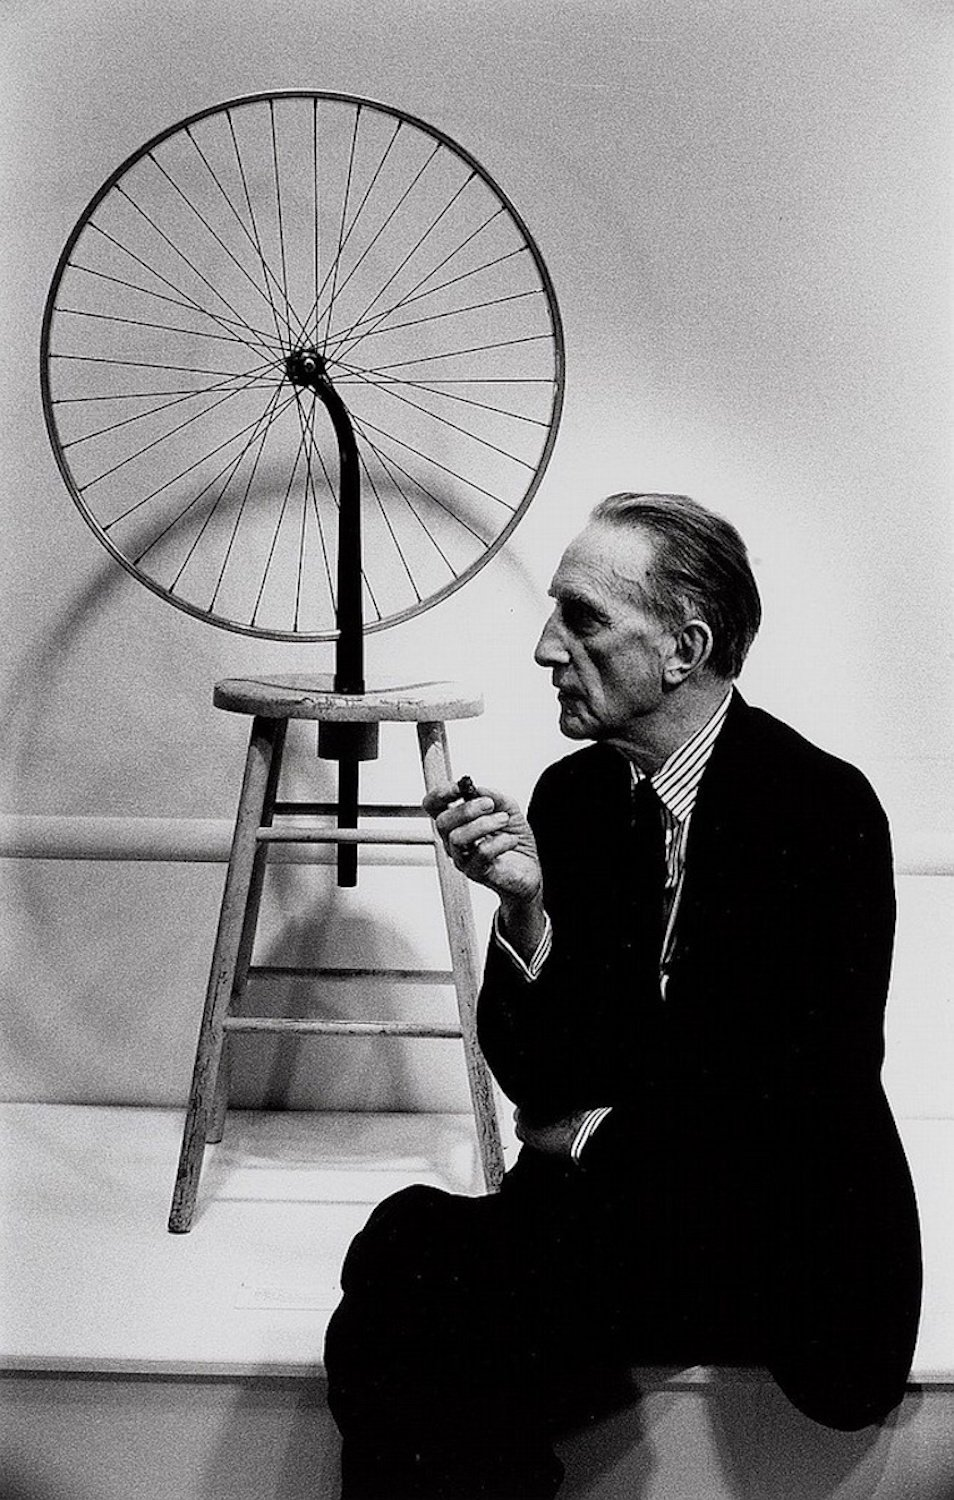 Marcel_Duchamp_with_Bicycle_Wheel_org